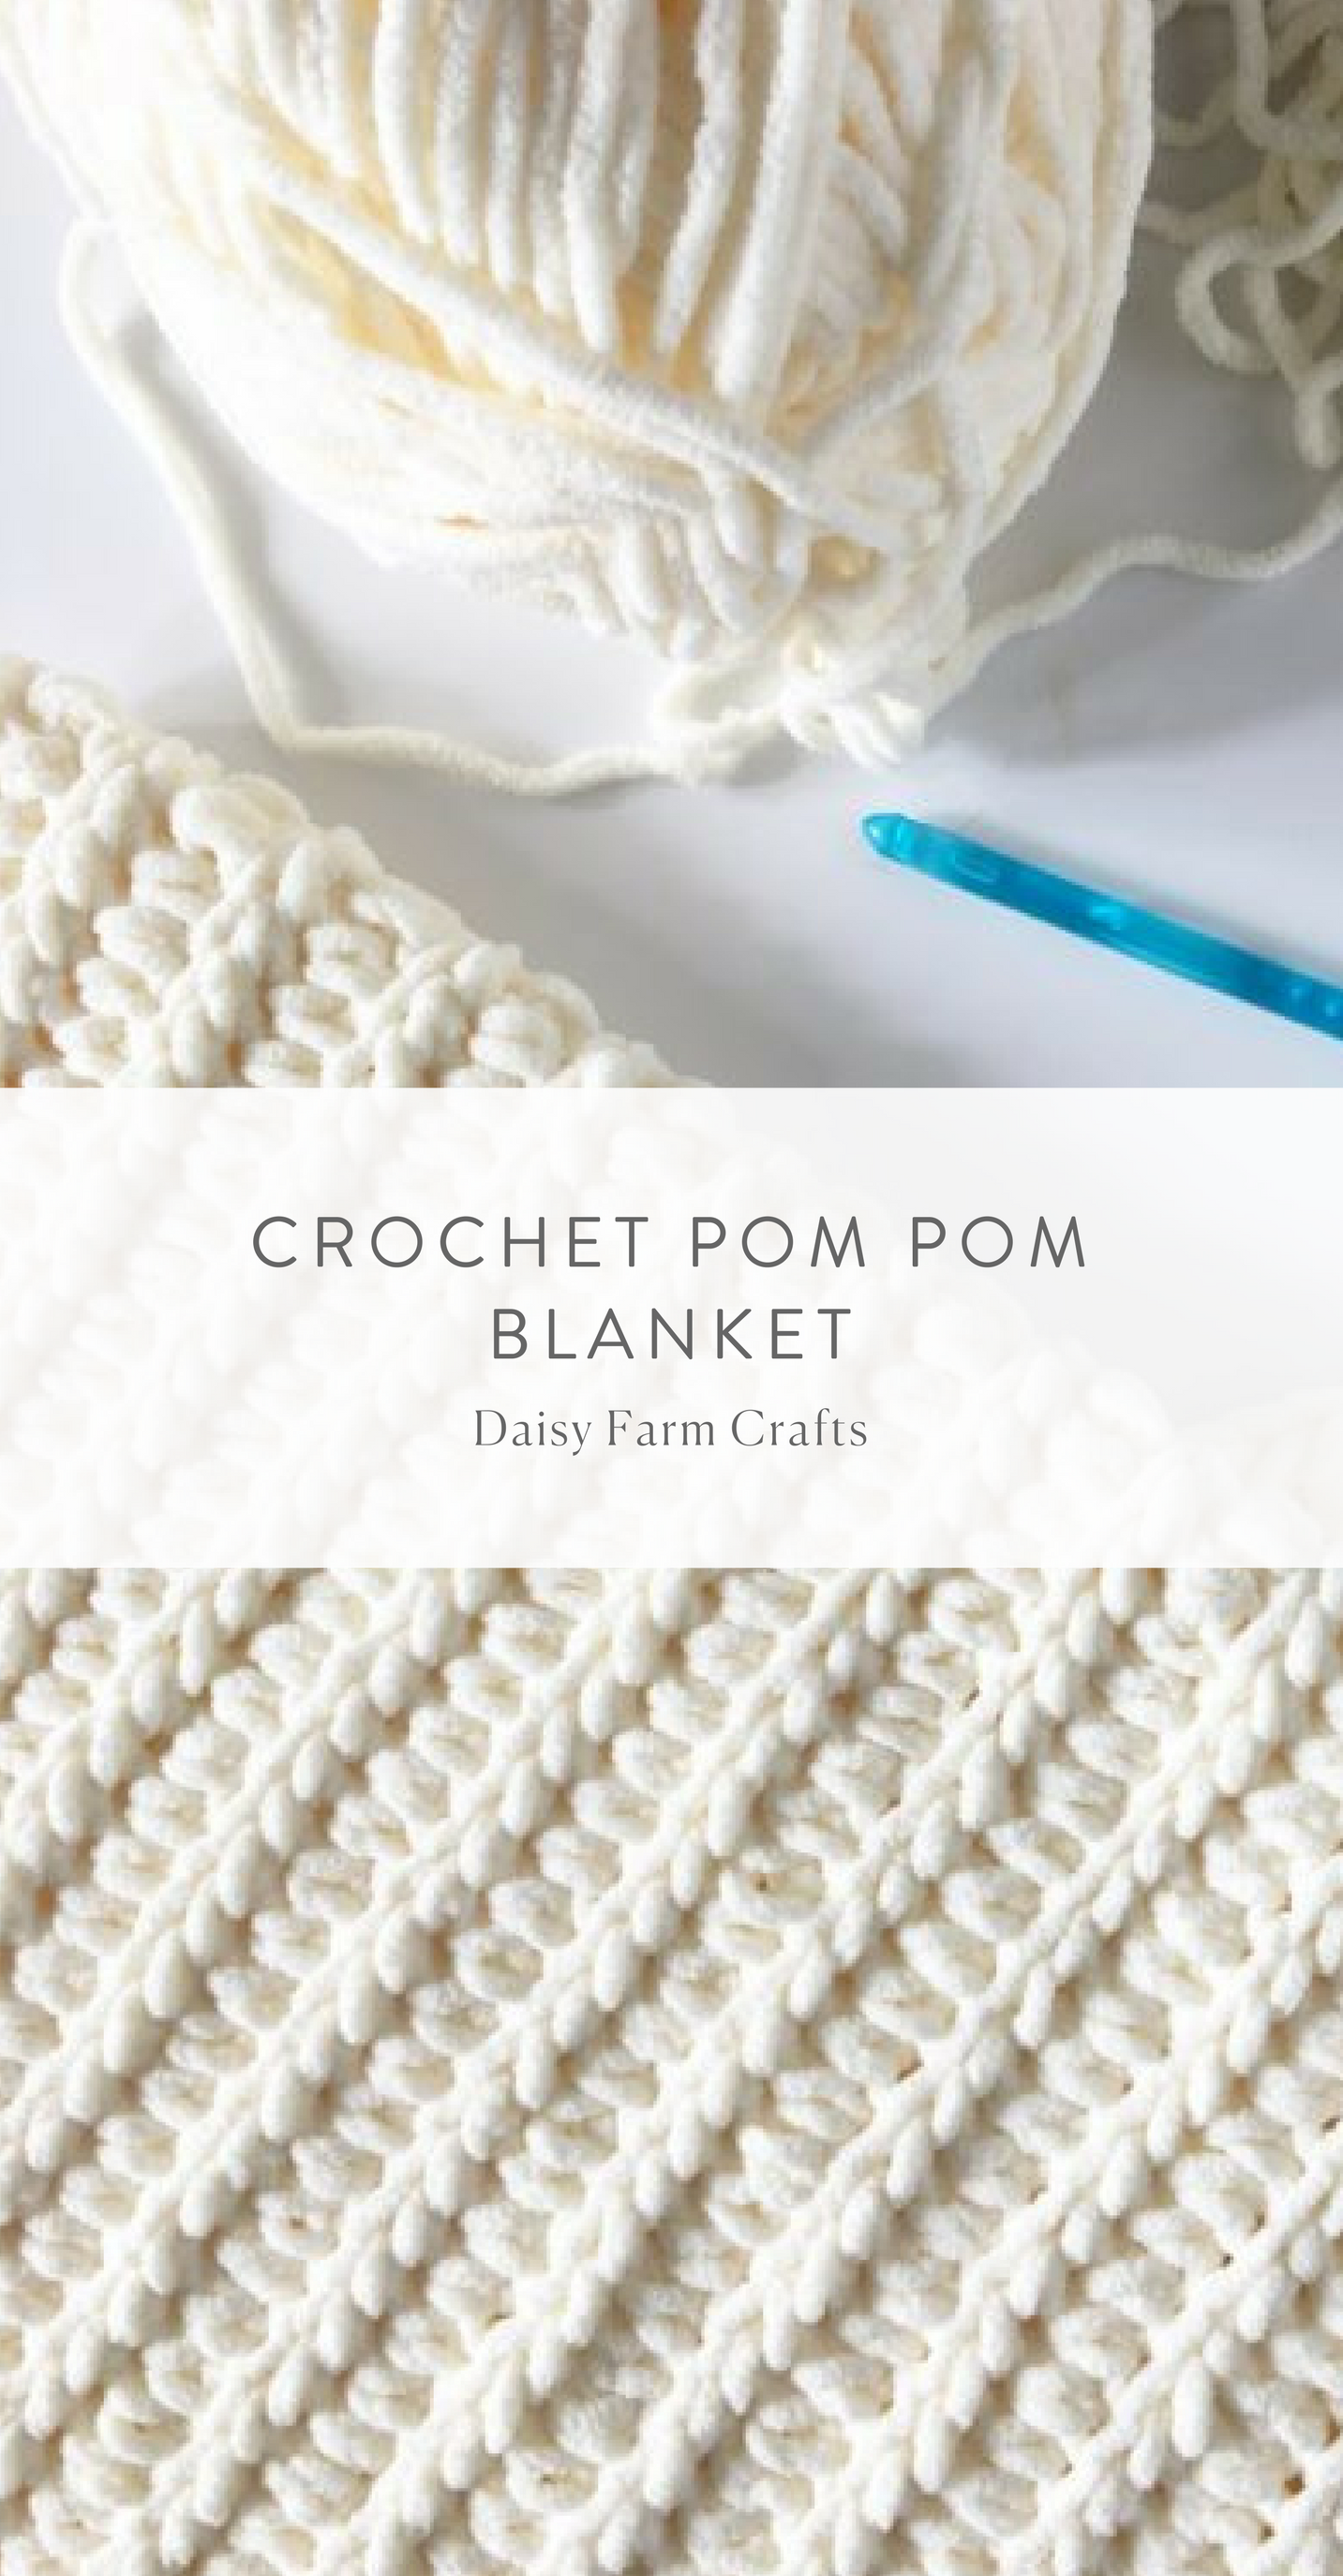 Free Pattern - Crochet Pom Pom Blanket | Sewing Addiction ...